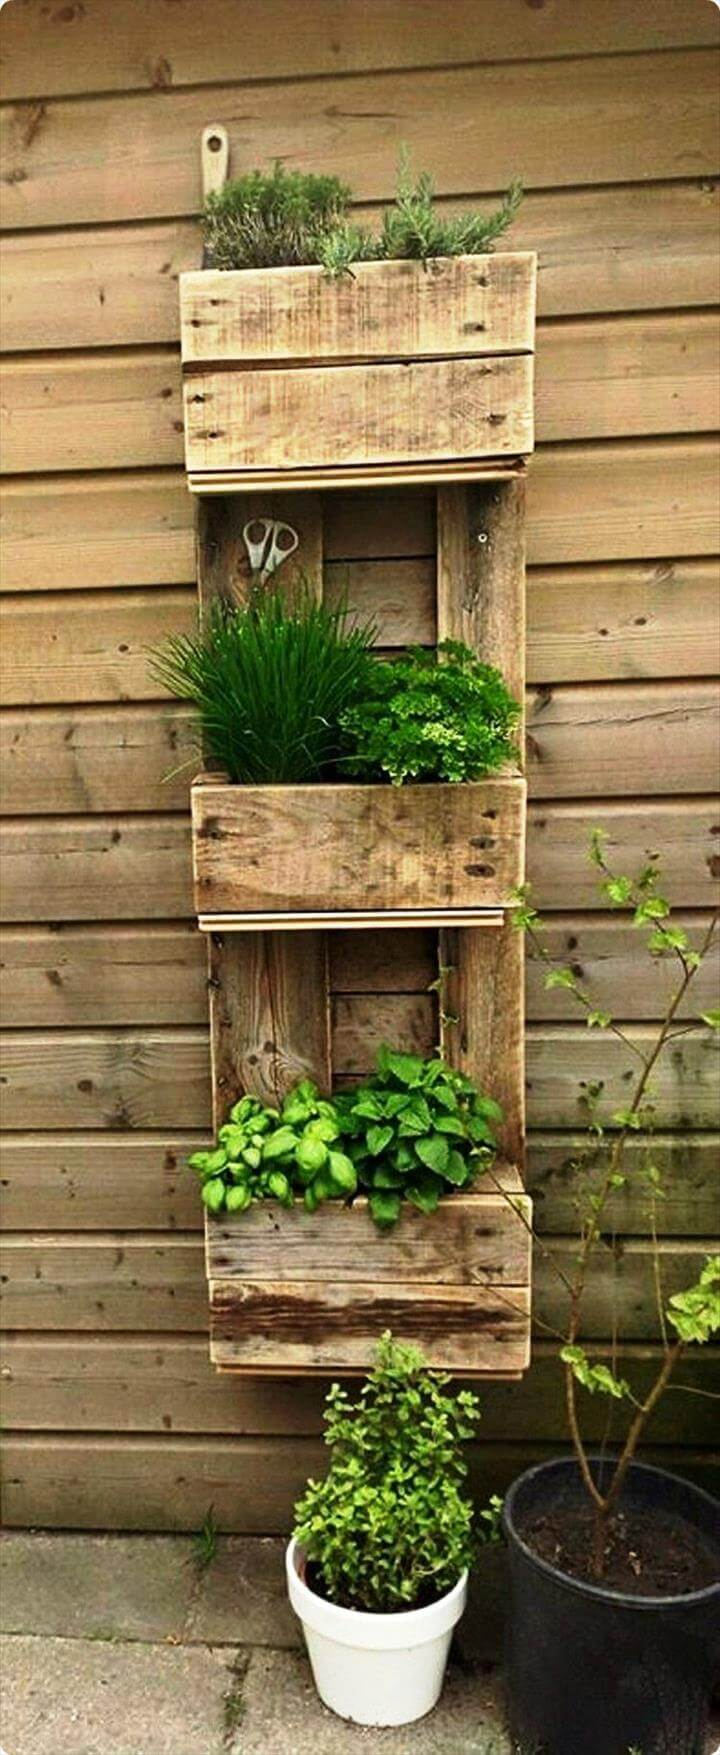 20 Recycled Pallet Ideas - DIY Furniture Projects | 101 ...